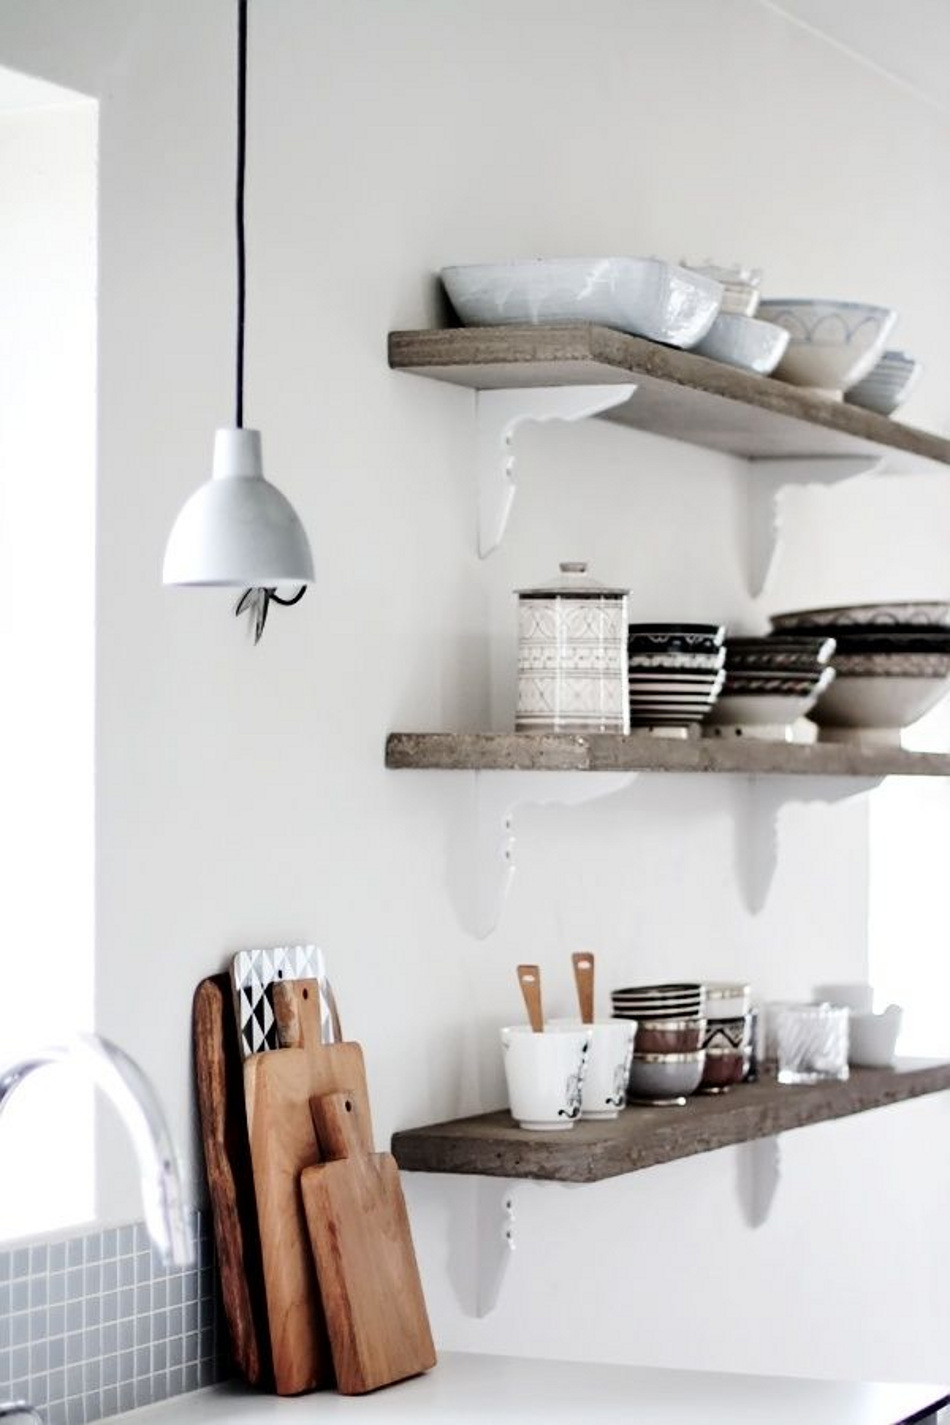 Pinterest - Kitchen shelves, scaled